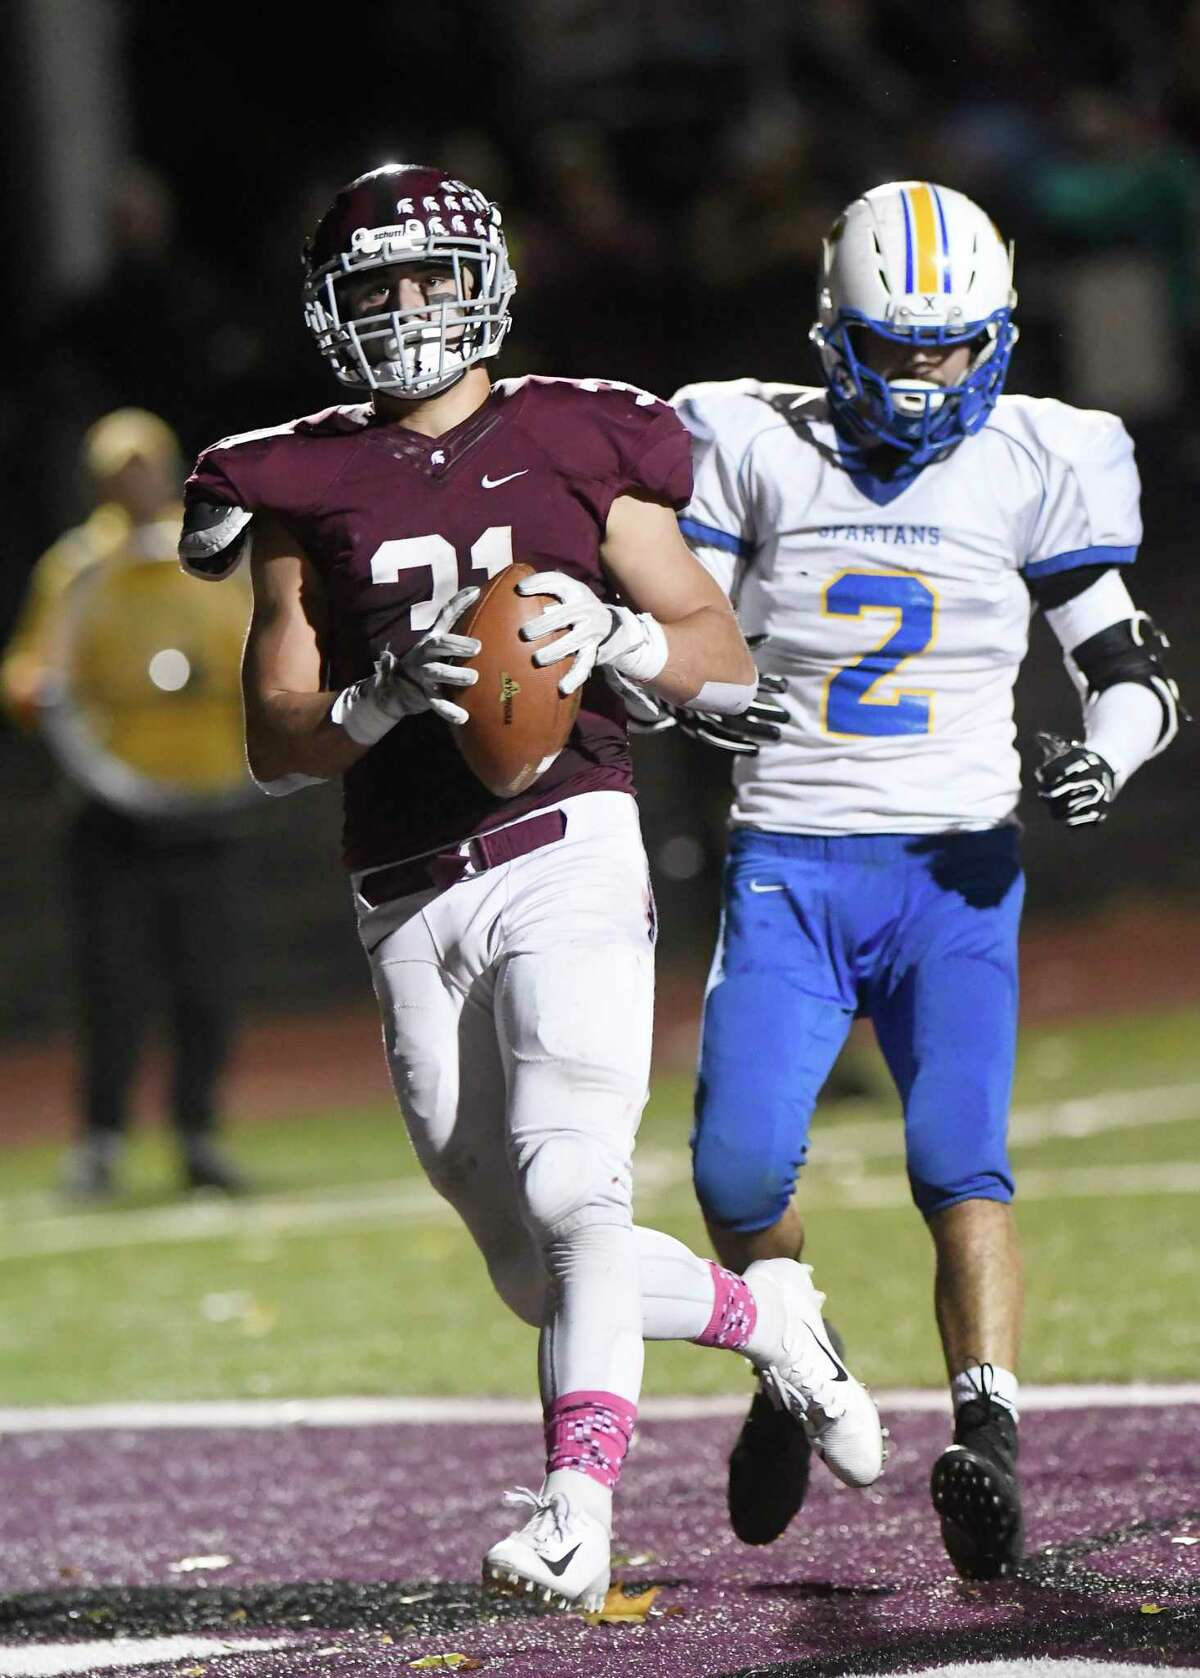 Burnt Hills-Ballston Lakes Vincent Daviero (31) scores a touchdown in front of Queensburys Zaki Farah (2) during the first half of a Section II High School football game Friday, Oct. 12, 2018, in Burnt Hills, N.Y. (Hans Pennink / Special to the Times Union)